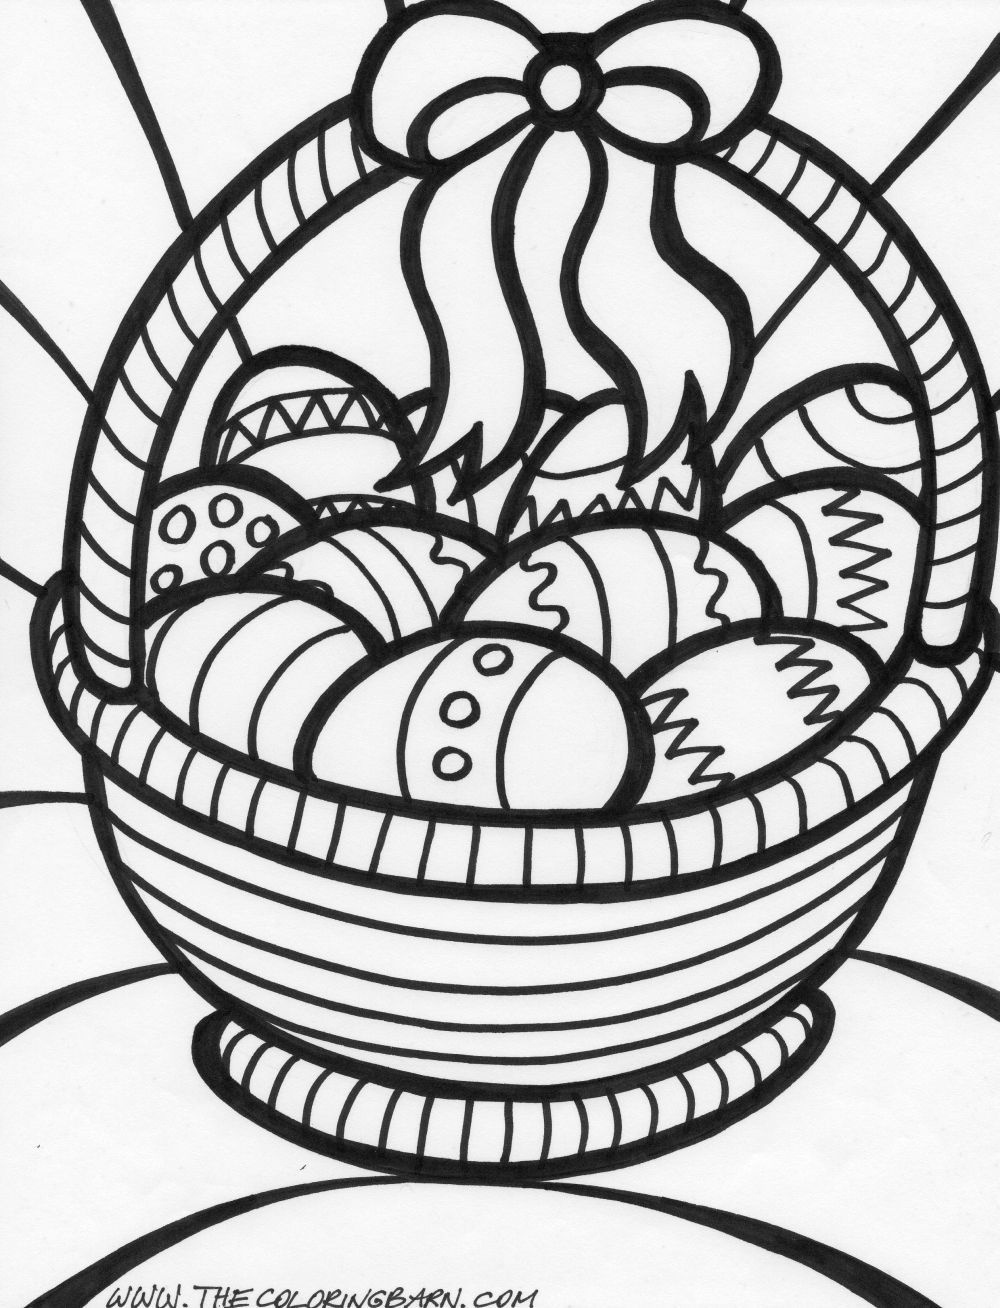 Easter Coloring Pages | Big Easter Basket Coloring Page | Things I - Free Printable Coloring Pages Easter Basket